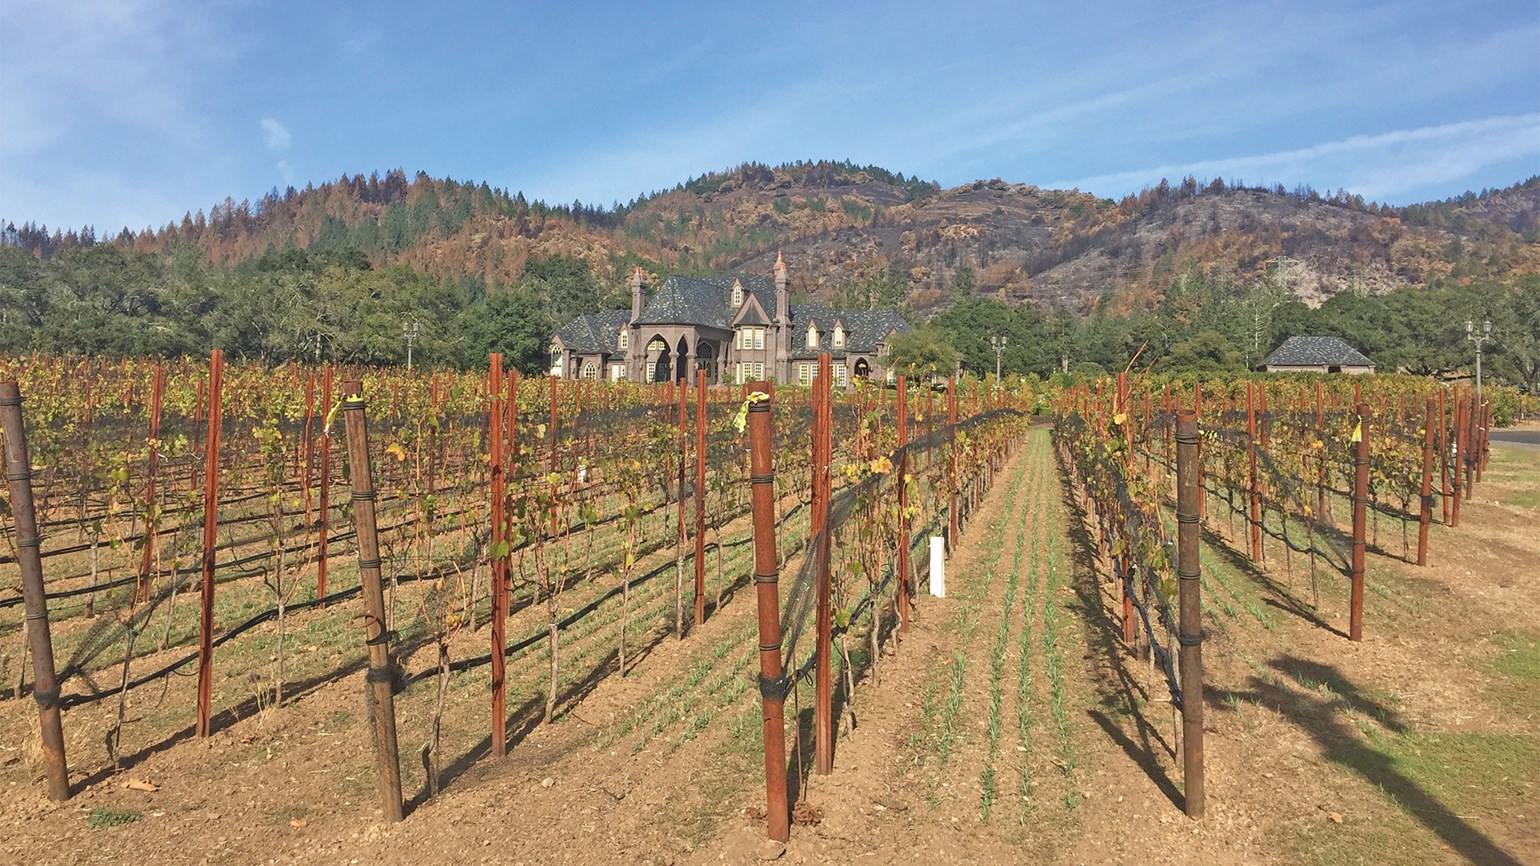 California's wine country is bountiful and beautiful